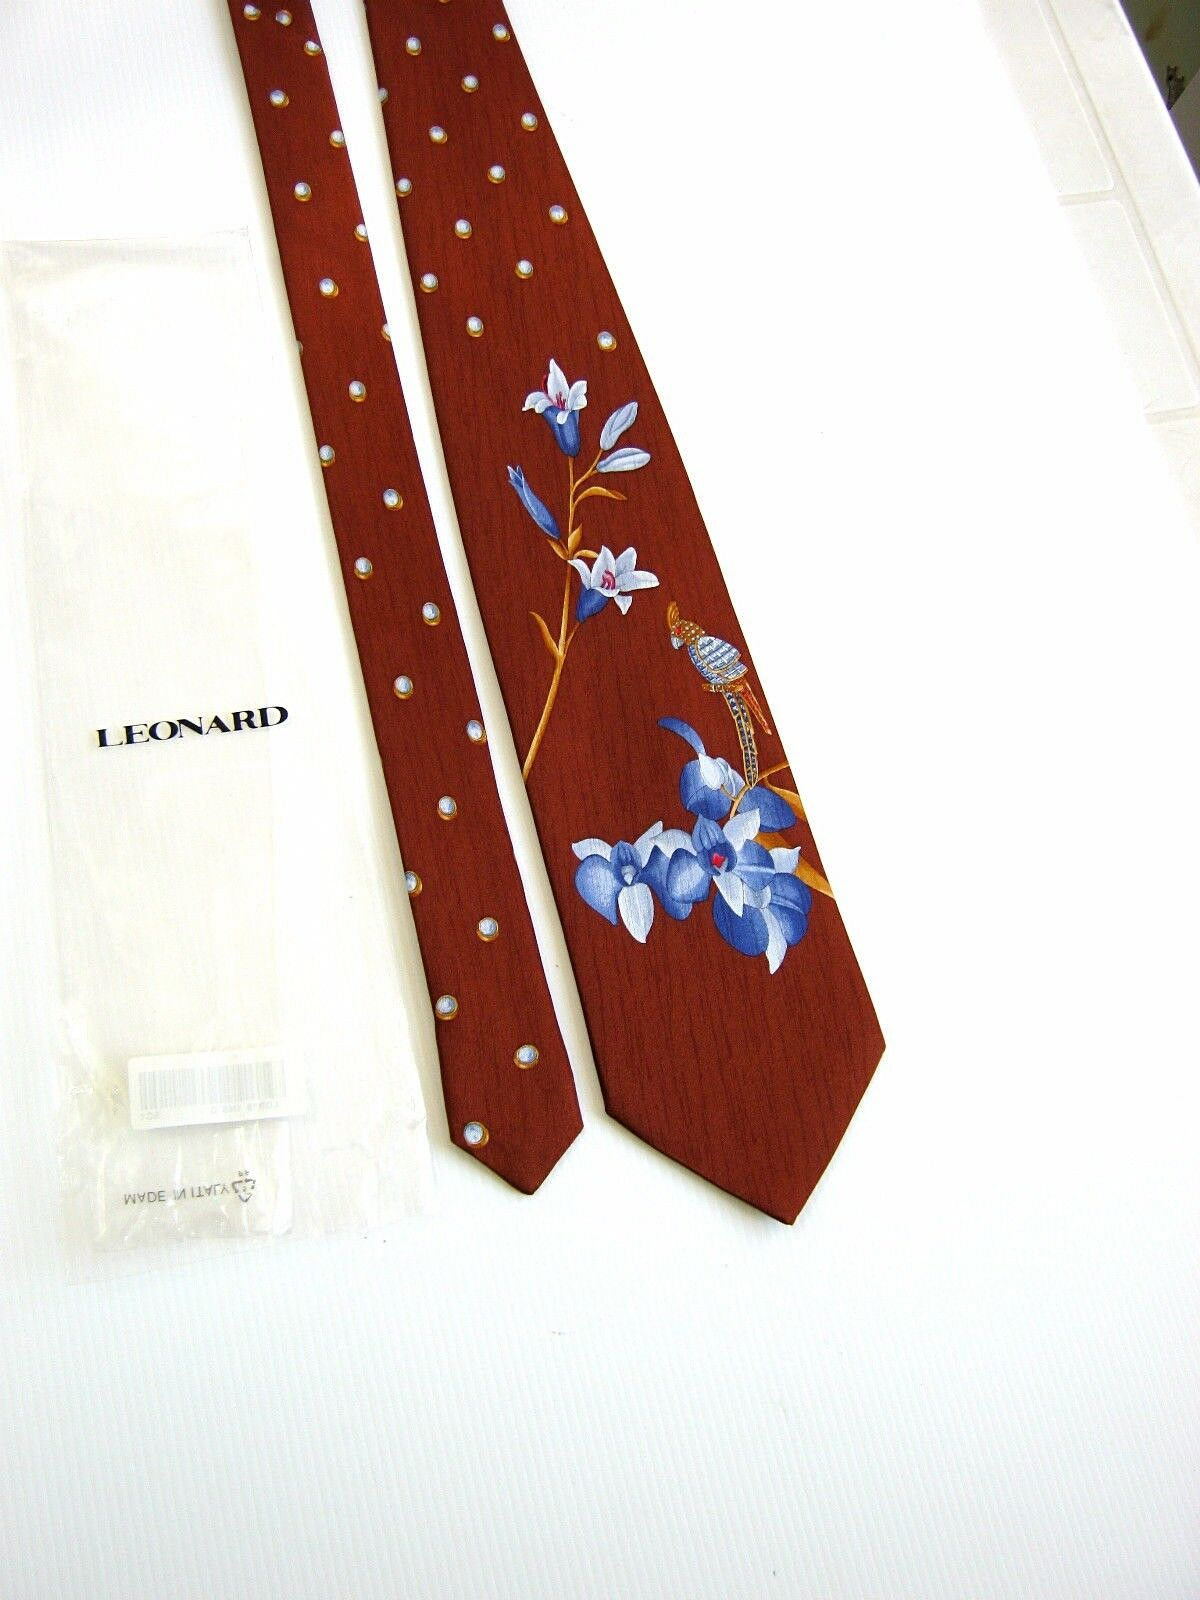 LEONARD Paris NUOVA NEW Originale SILK DESSIN 71400 MADE IN ITALY